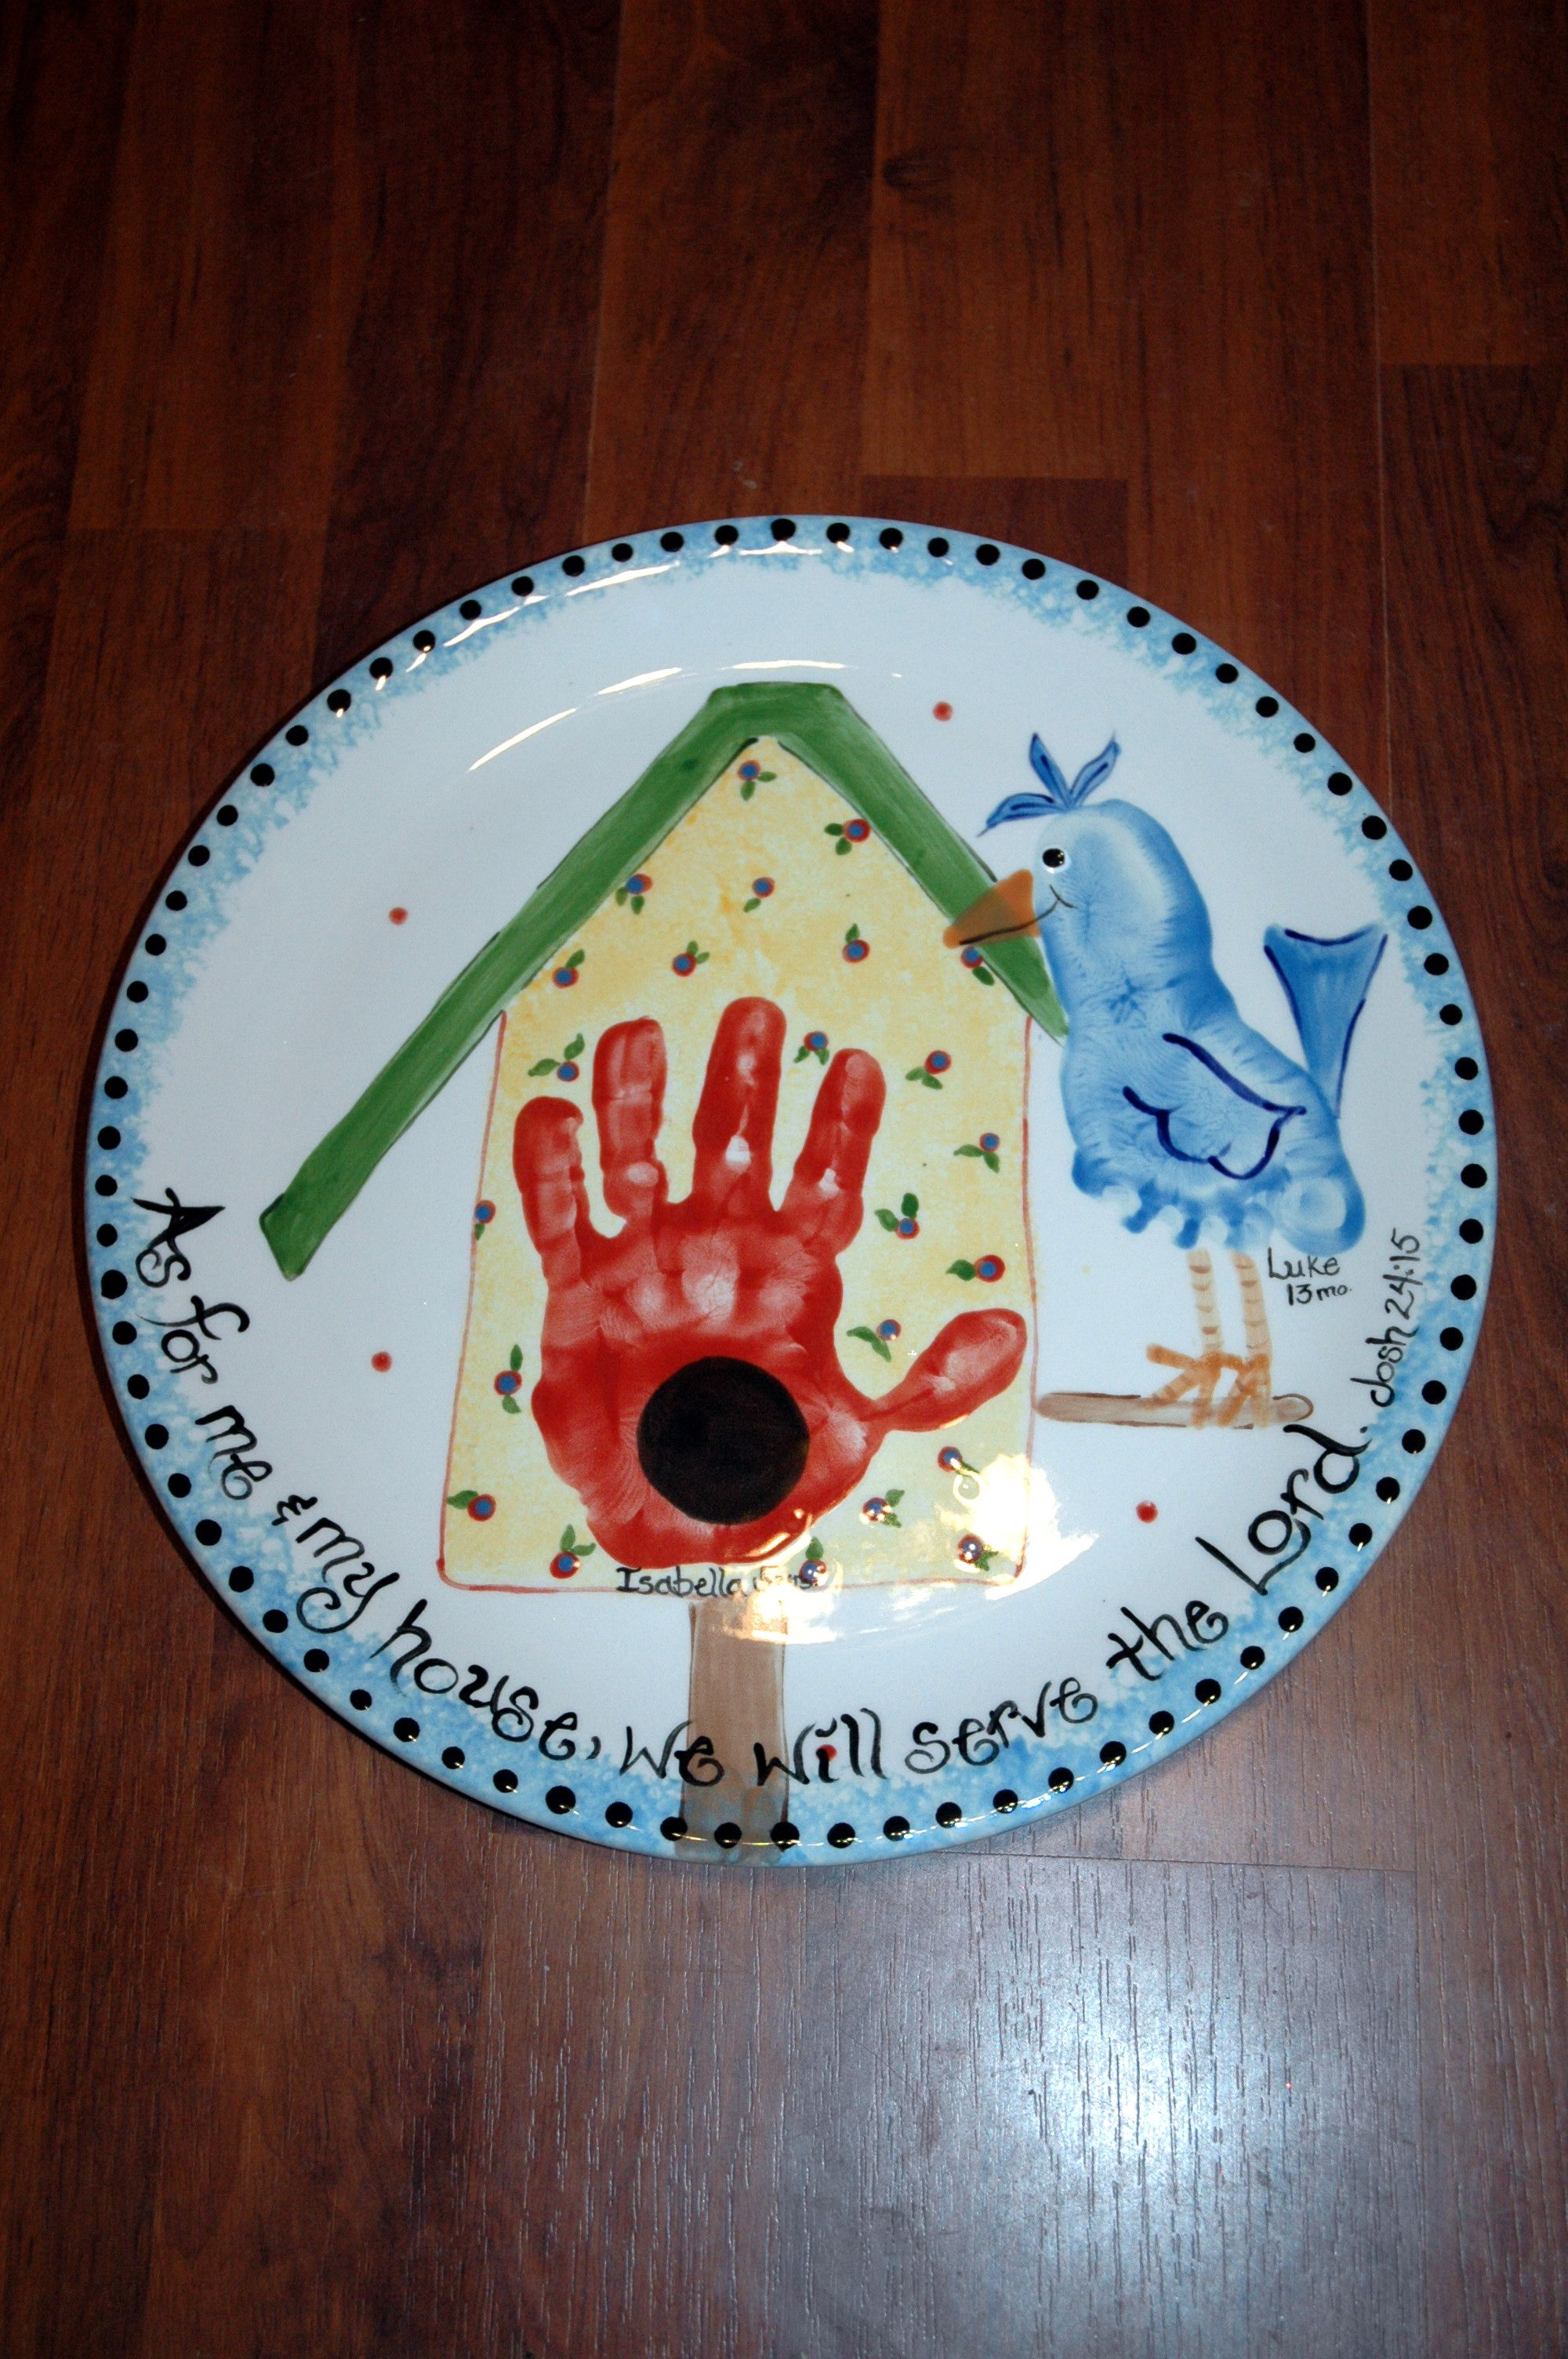 birdhouse handprint plate made by Sara Grubbs & birdhouse plate using hand and foot - so adorable! | Hand and ...